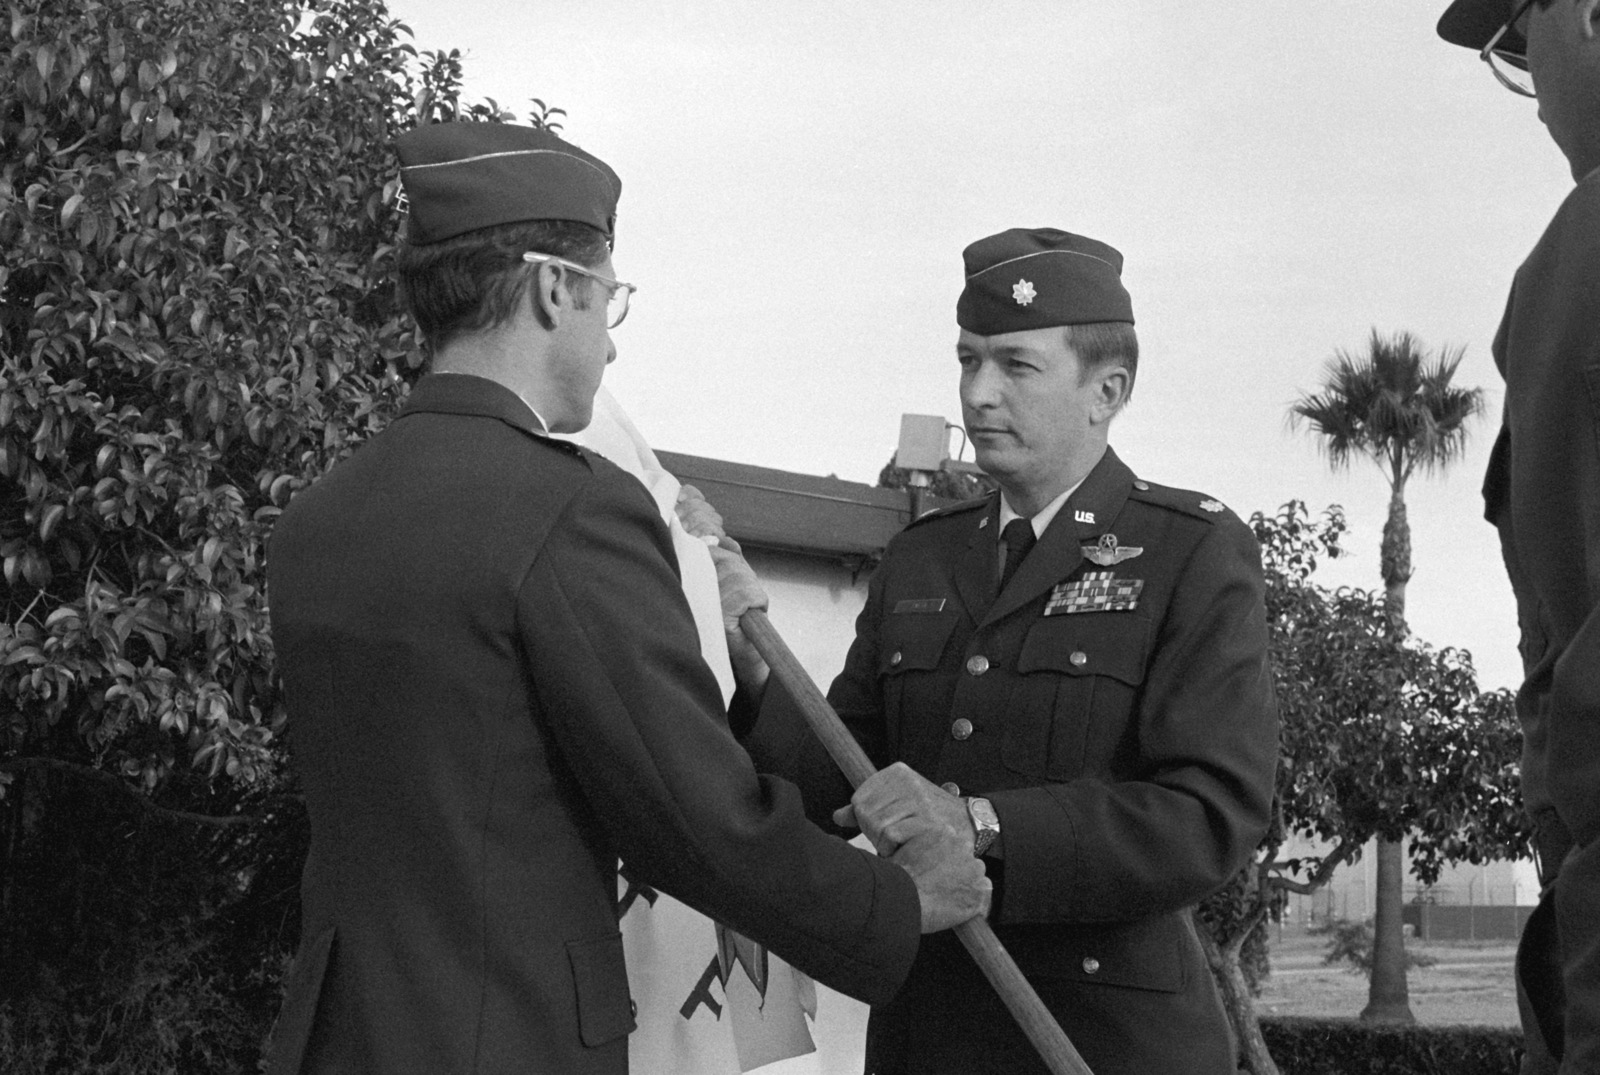 Lieutenant Colonel (LTC) Eugene A. Smith, right, relieves Colonel (COL) George M. Cowan during a change of command ceremony for the 358th Tactical Fighter Training Squadron